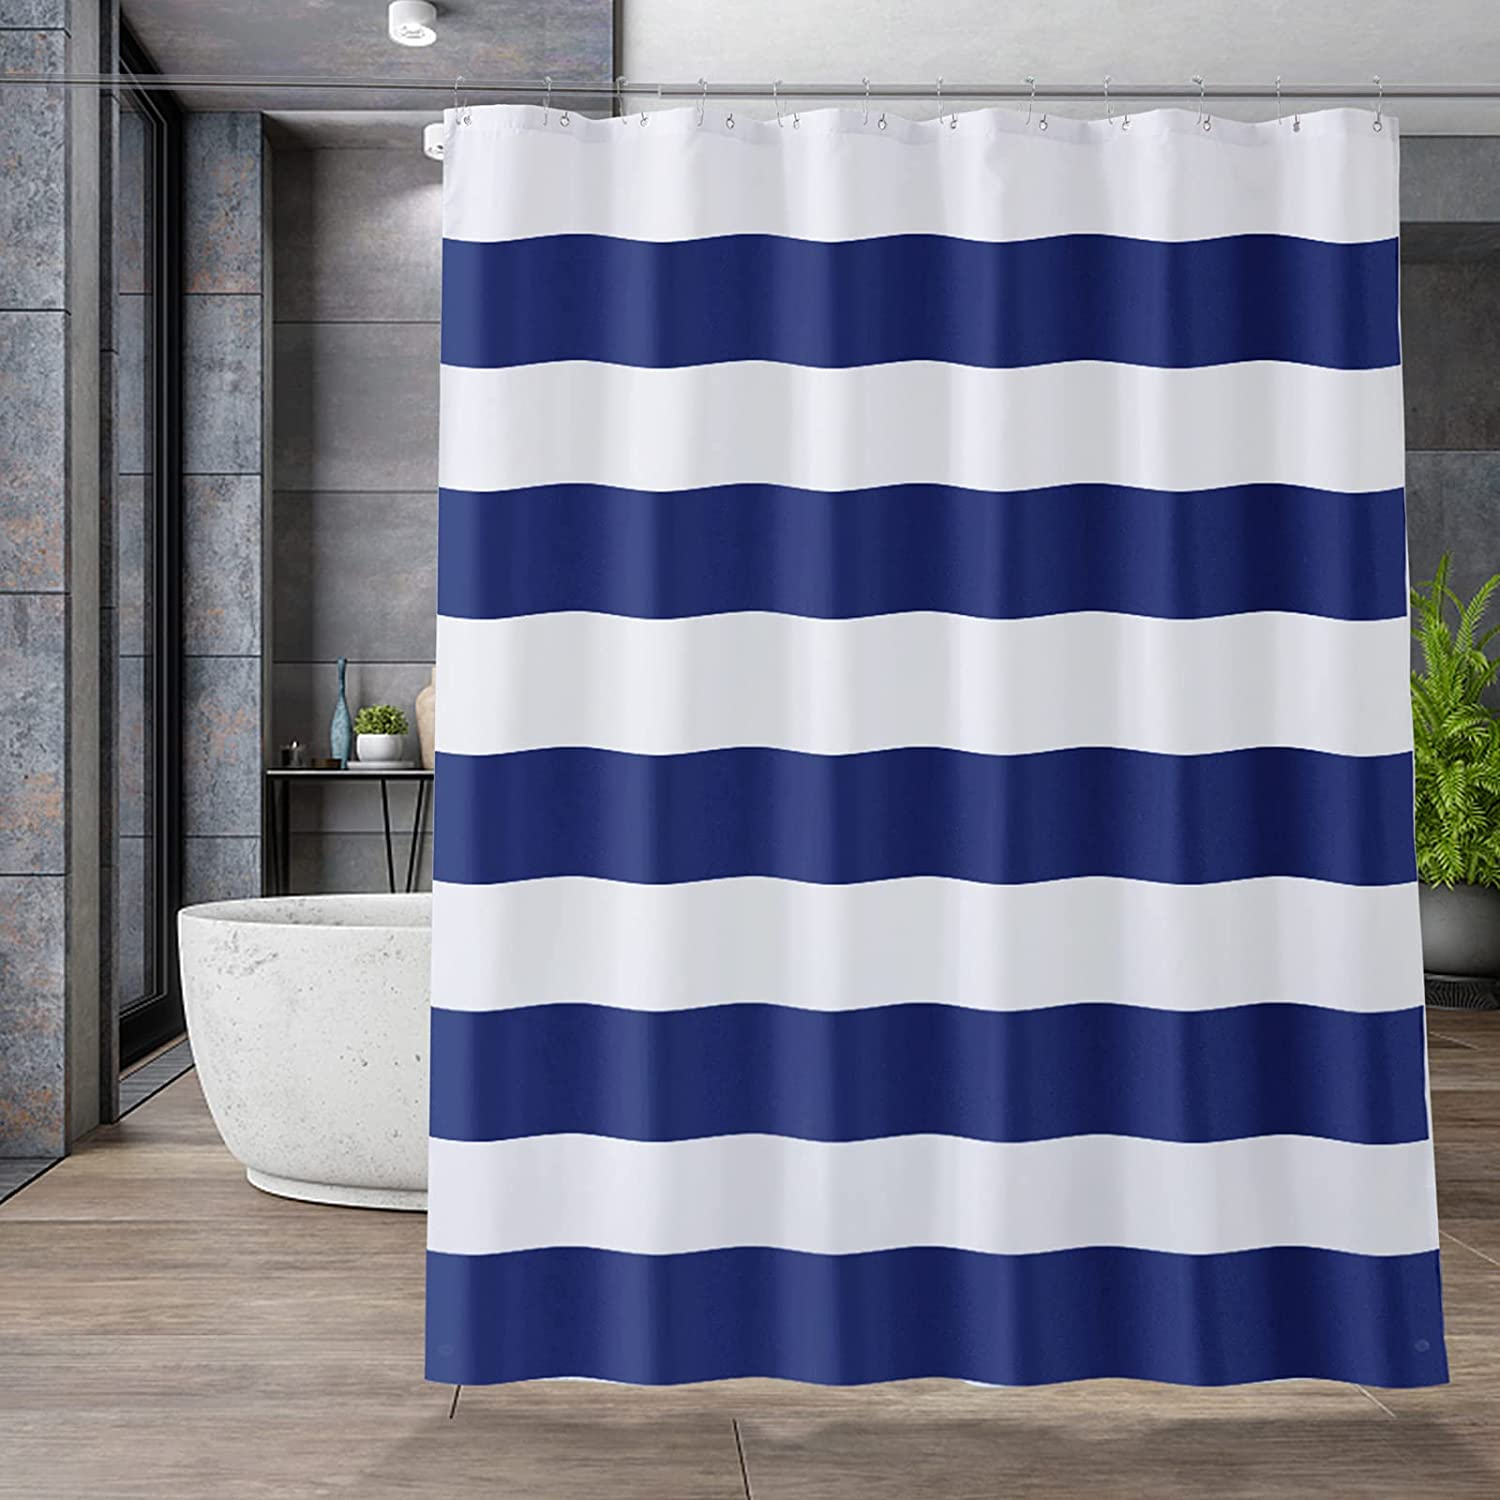 AmazerBath Navy Blue Shower Curtain Liner Blue Stripe Shower Curtain Navy for Bathroom 70x72 Inches Fabric Shower Curtain Liner 85 GSM Light with 2 Magnets Washable Waterproof for Home and Hotel